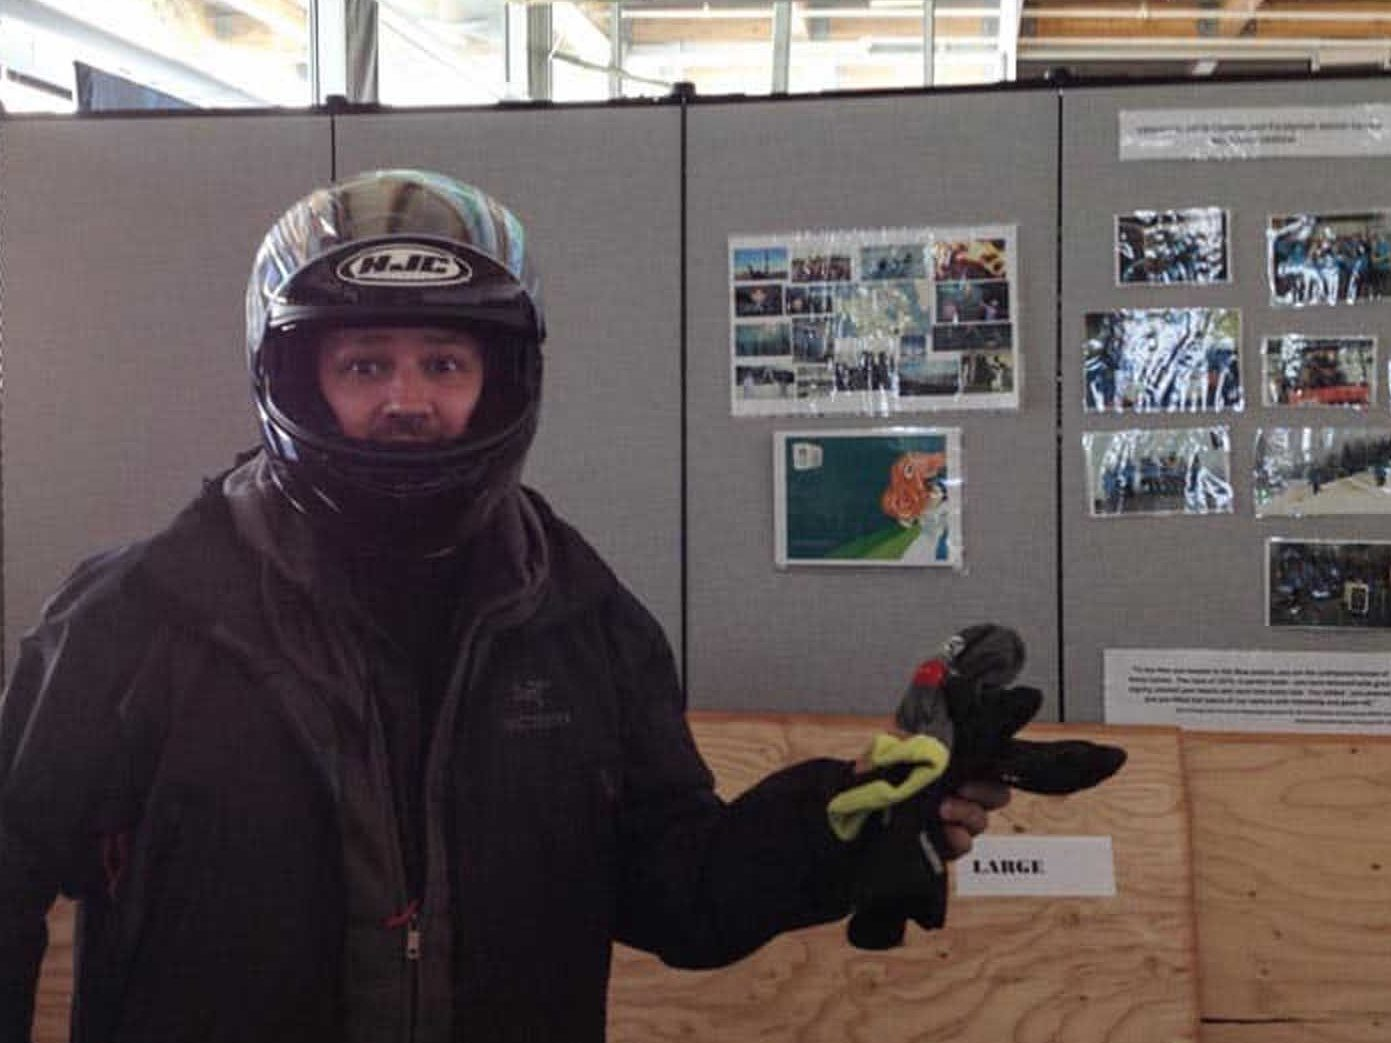 dave getting ready to bobsleigh